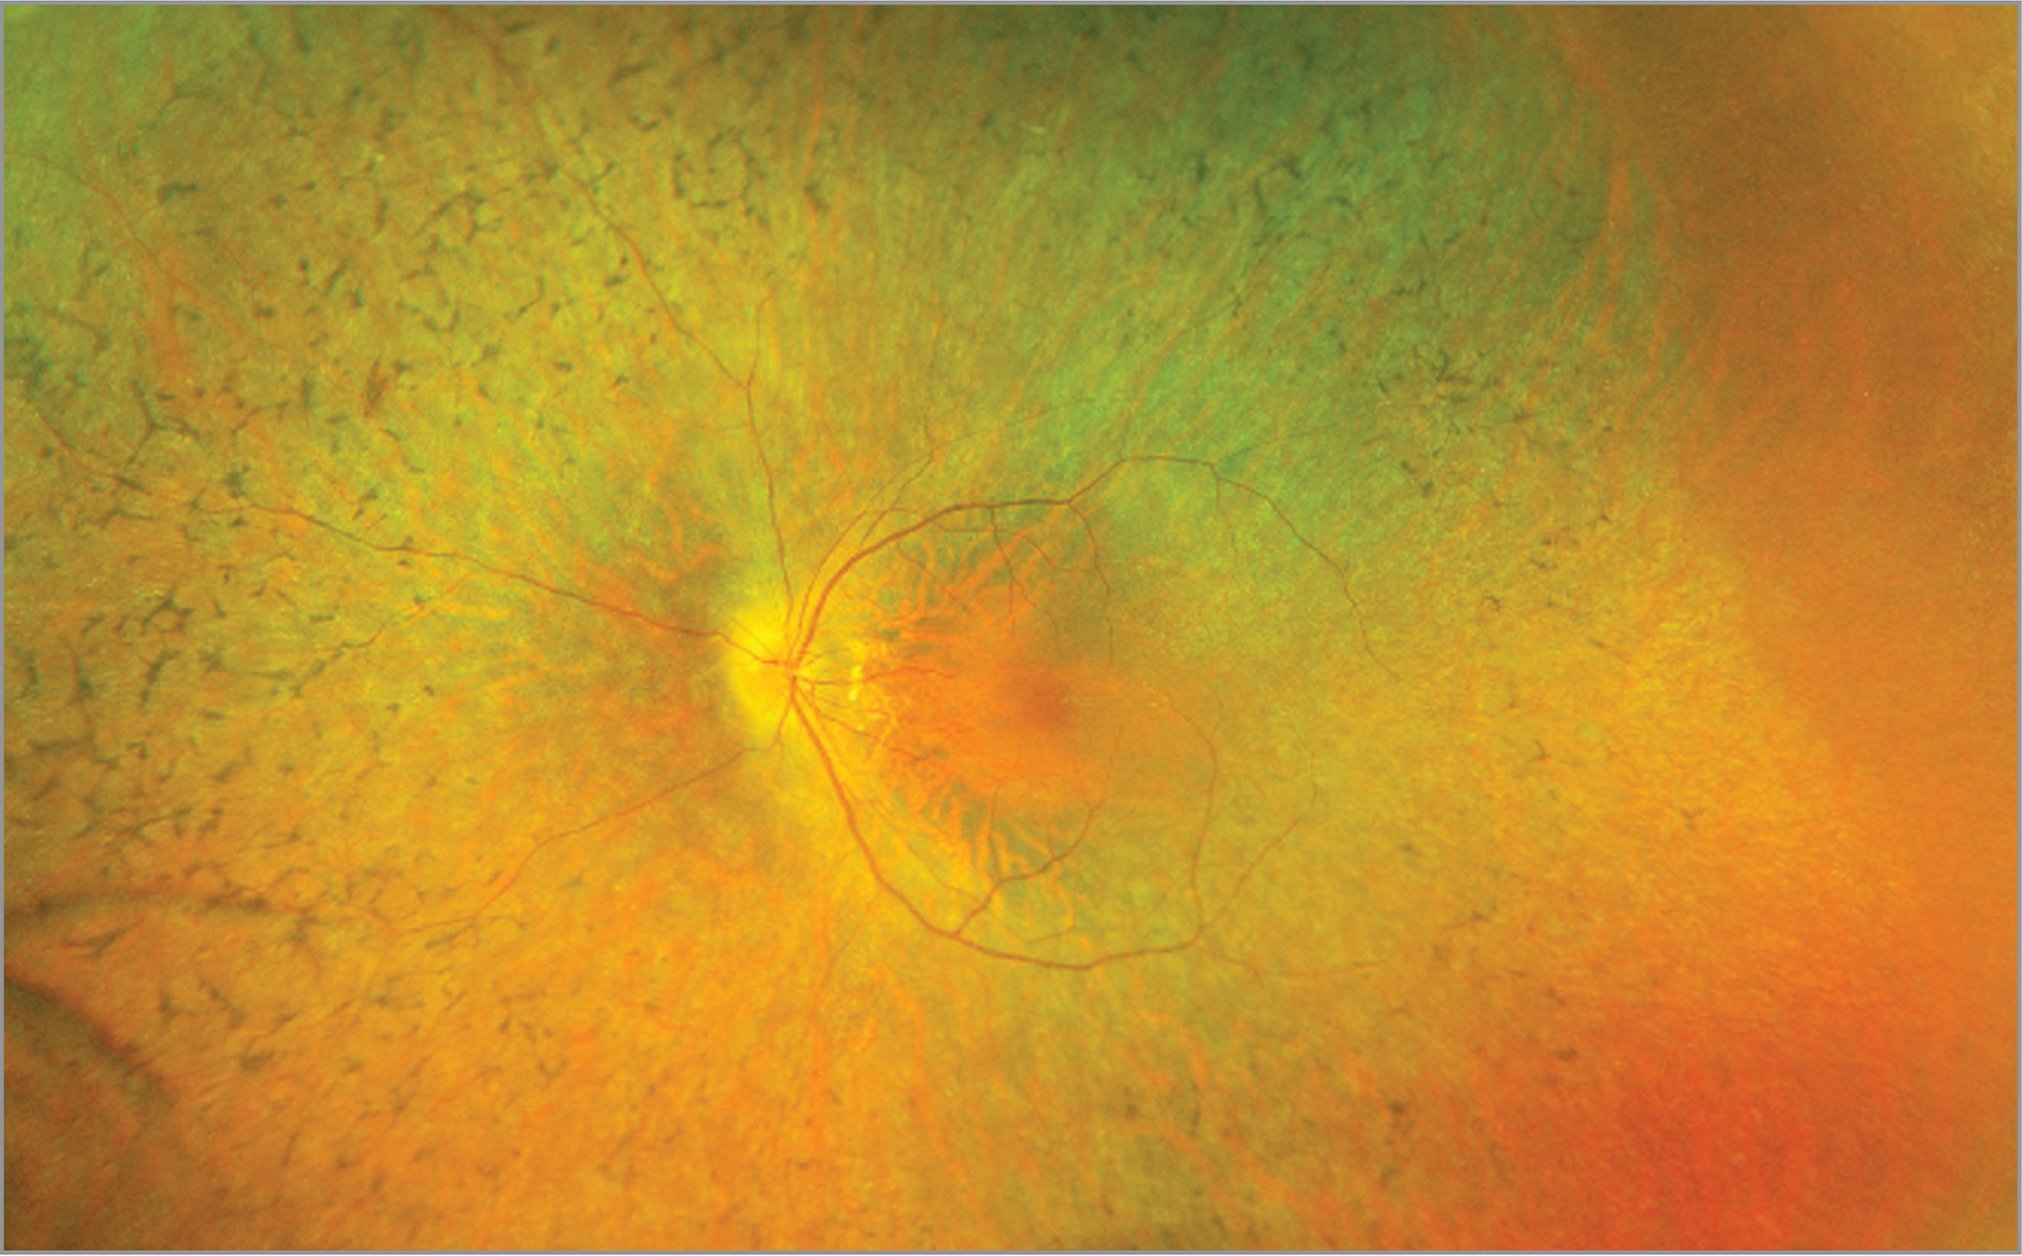 Widefield fundus photo of the left eye of a young male with X-linked retinitis pigmentosa. The retinal exam shows a tilted disc consistent with myopia and attenuation of the arterioles with retinal dystrophy extending to the periphery with bone spicule-like pigmentation.